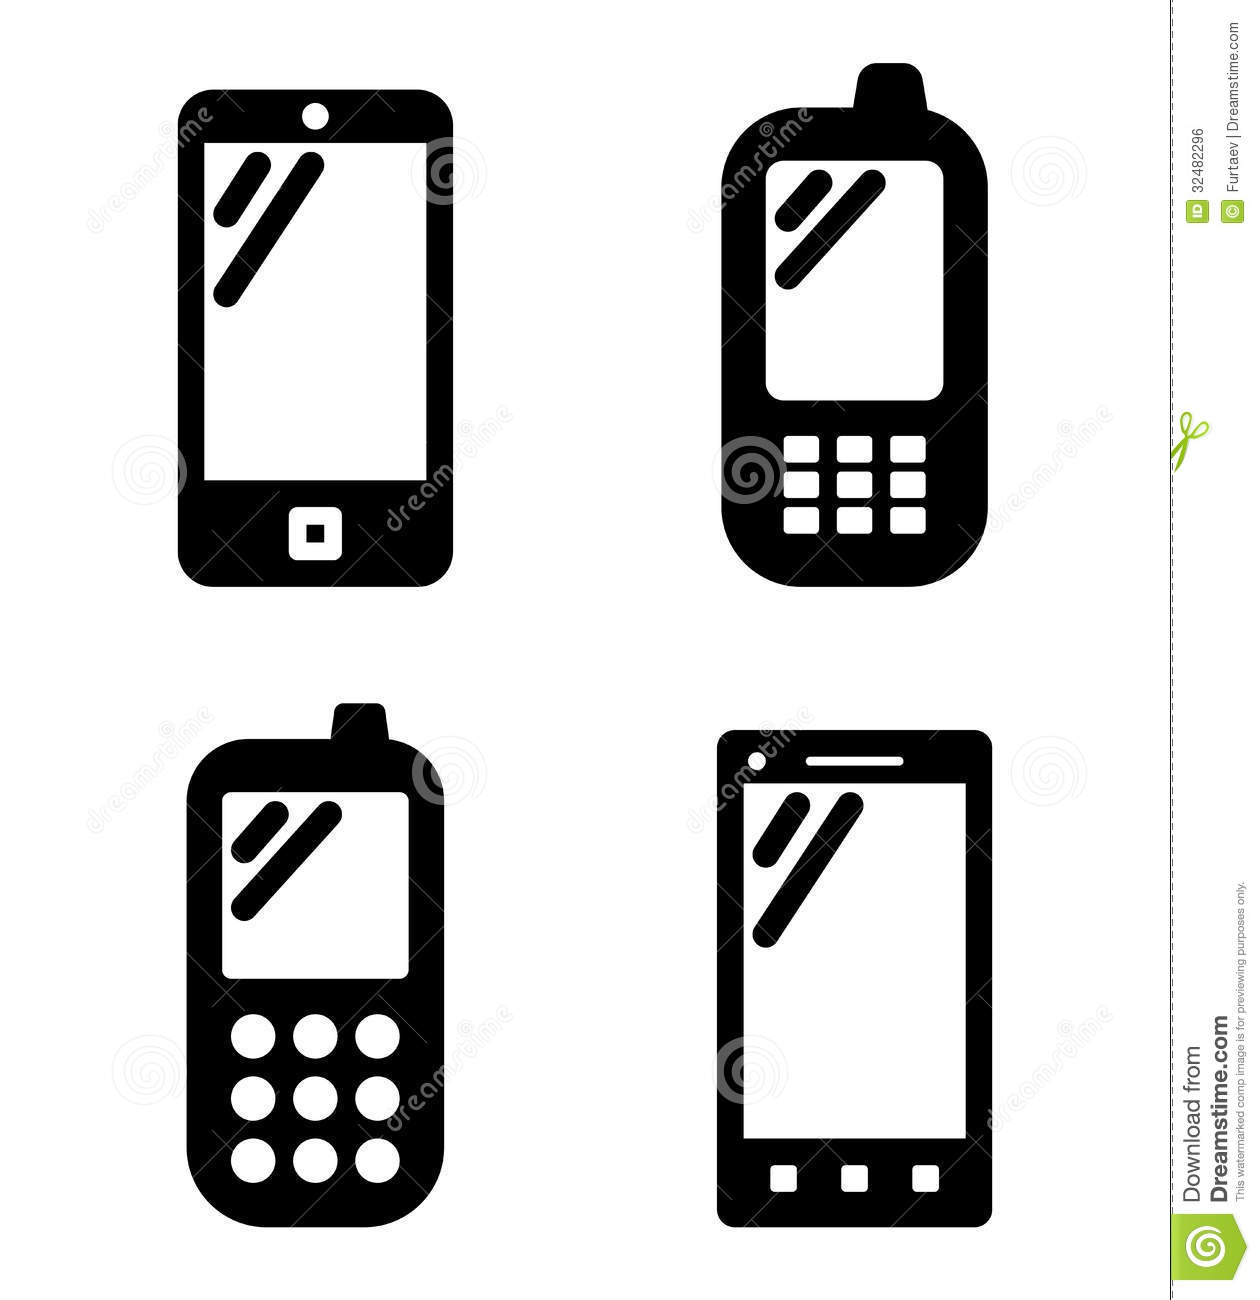 13 Mobile Phone Icon Vector Images